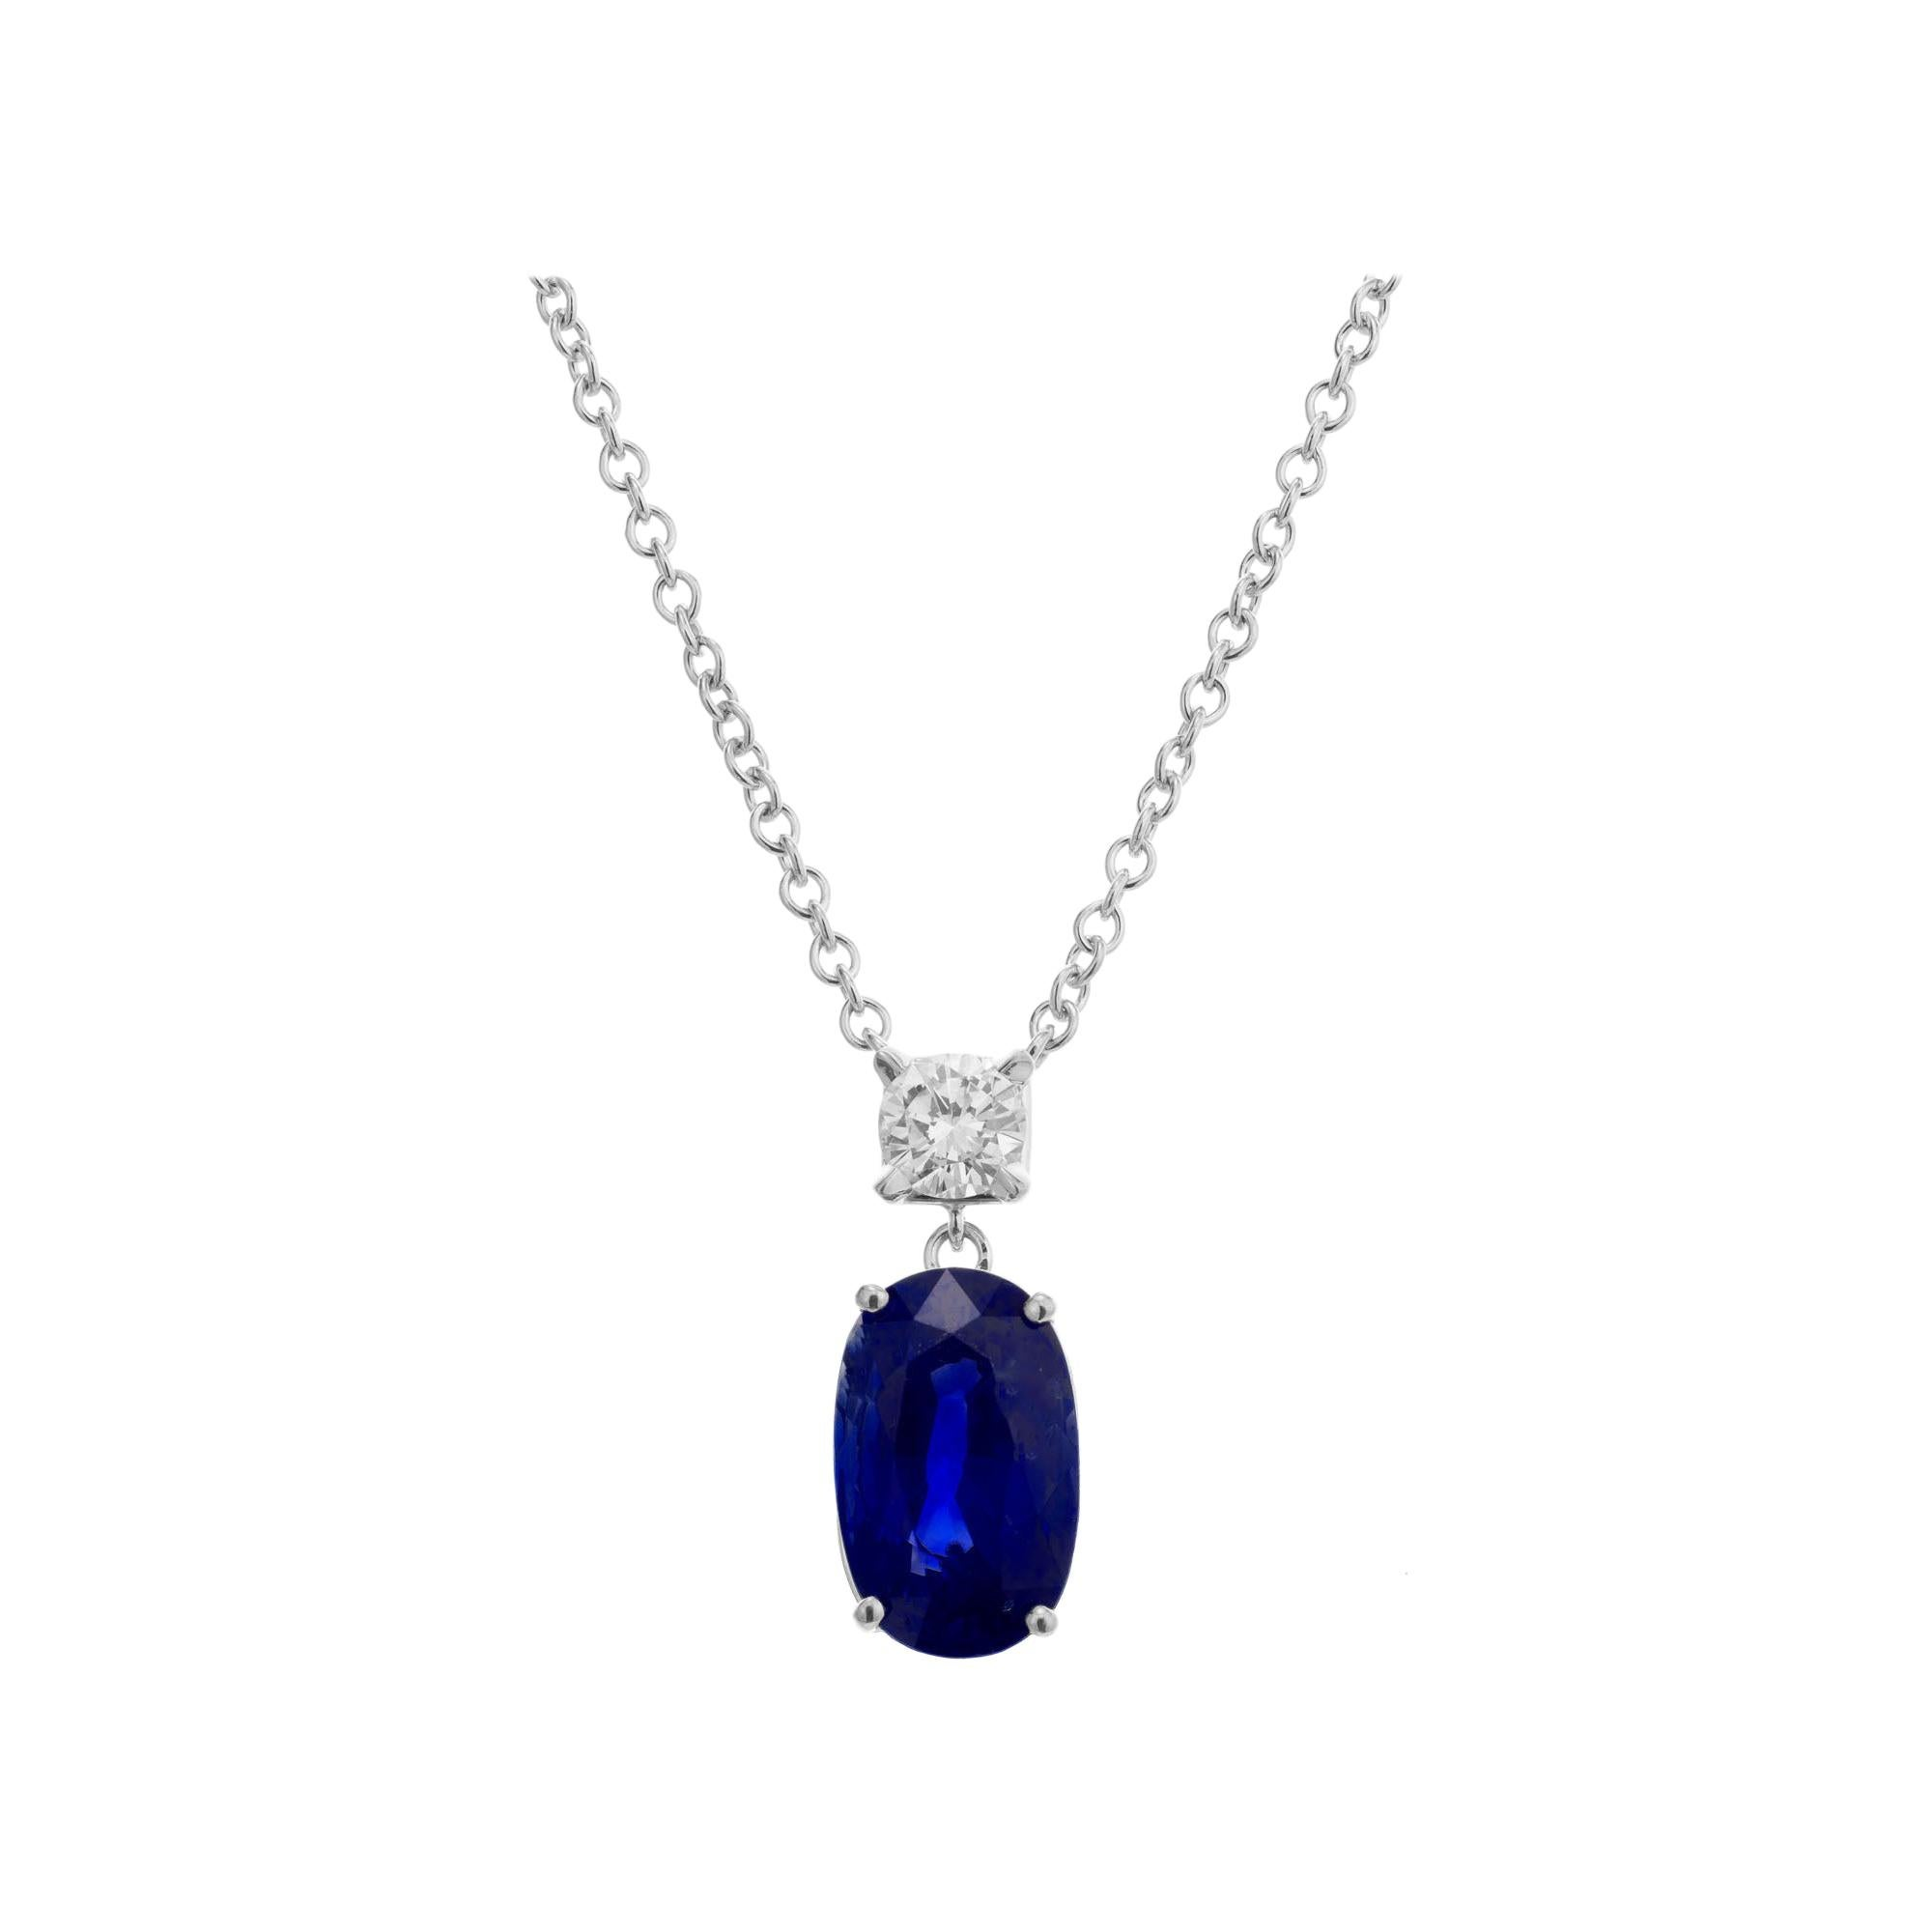 Peter Suchy GIA Certified 3.82 Carat Blue Sapphire Diamond Gold Pendant Necklace